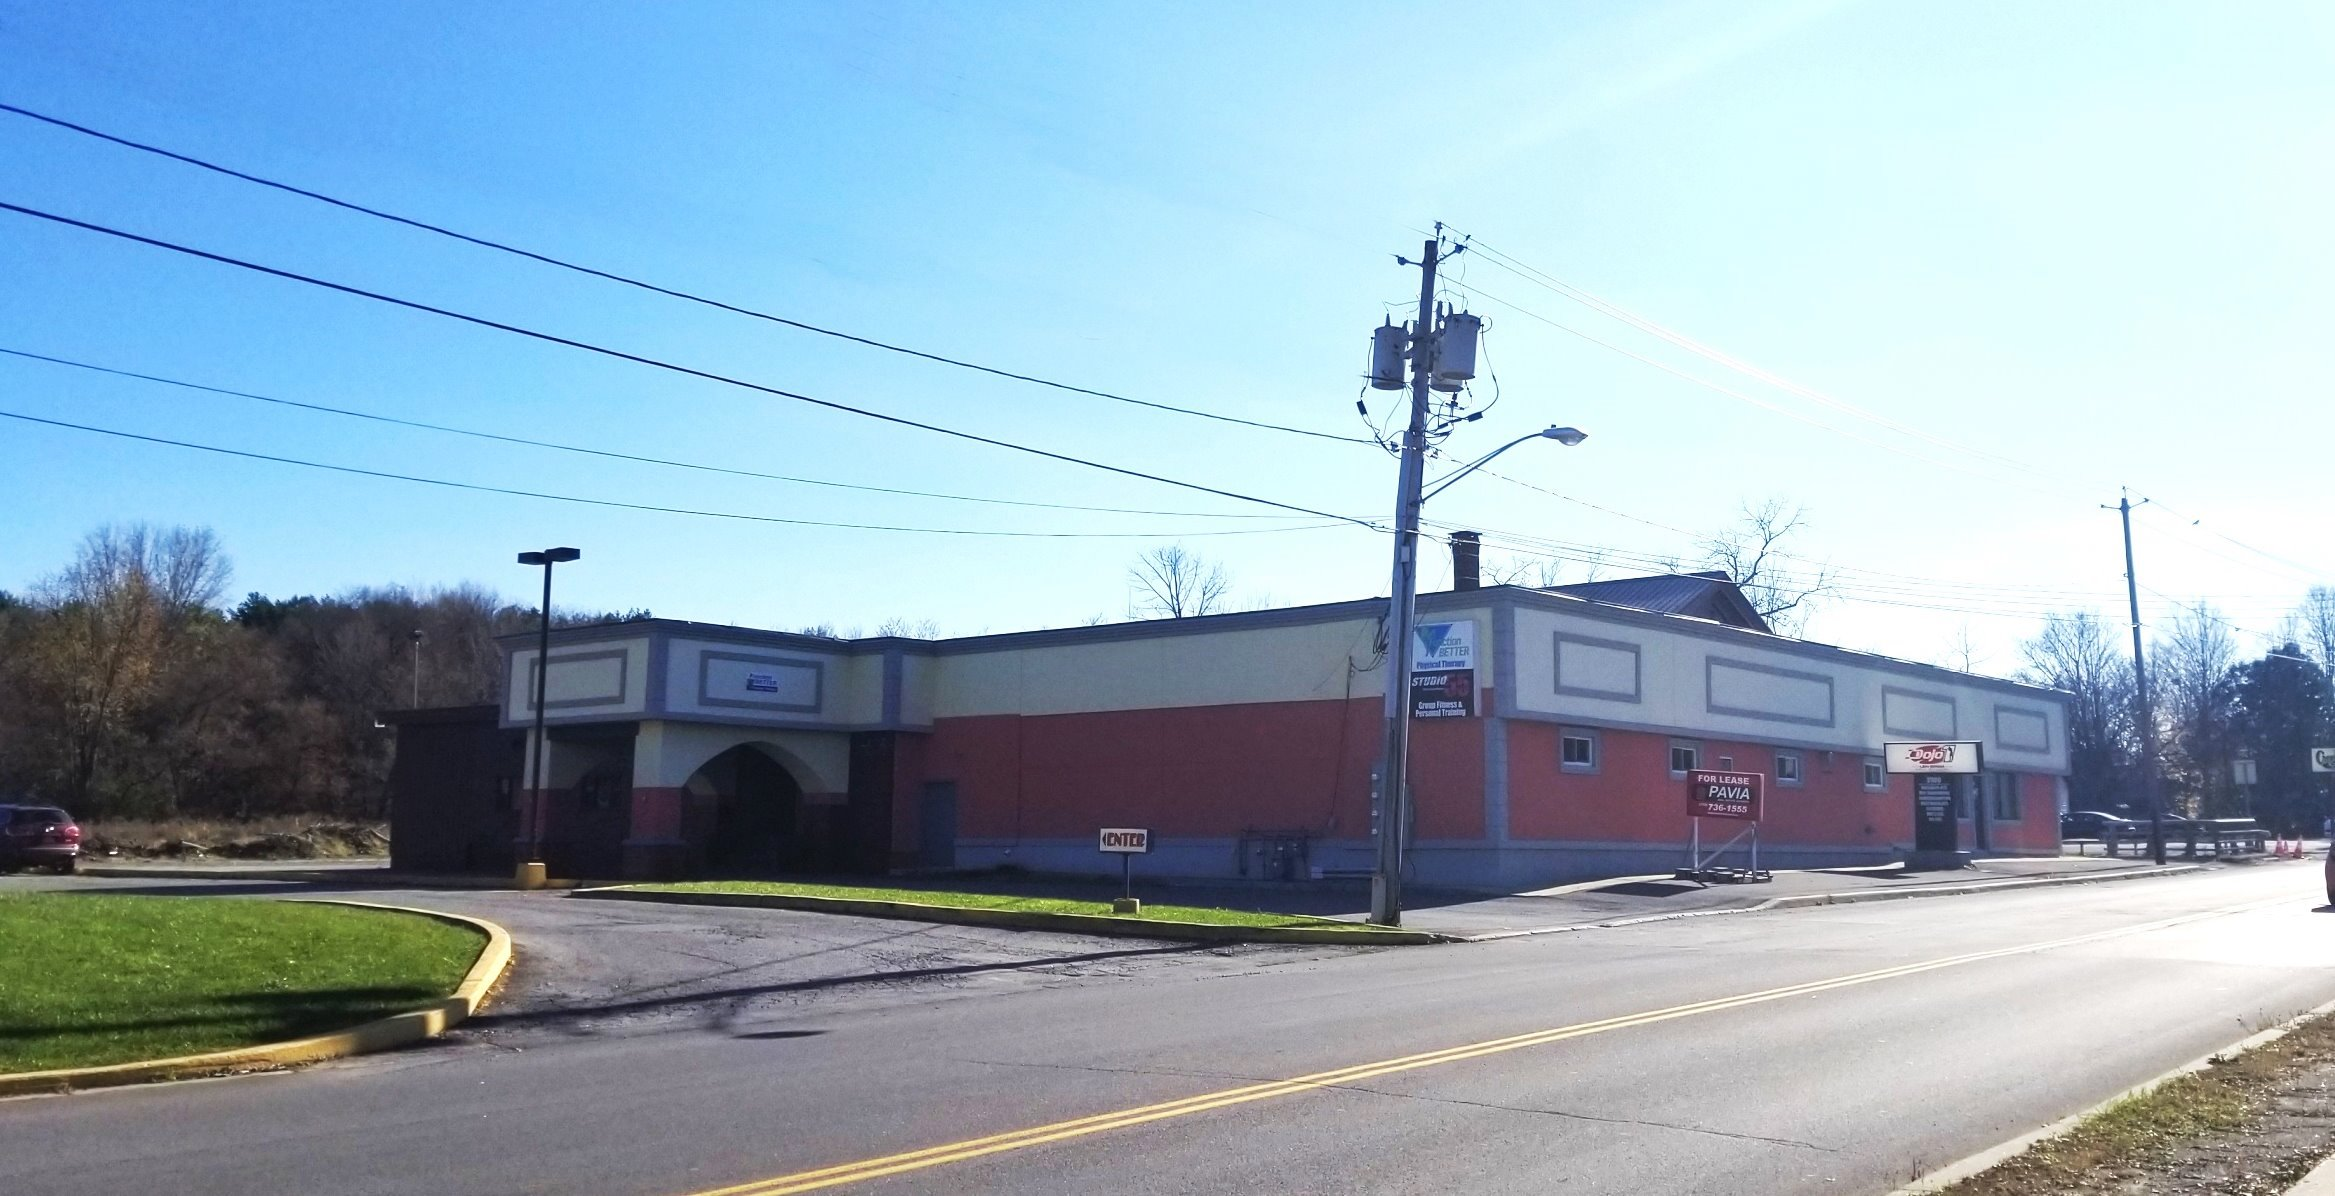 3900 Oneida Street, New Hartford, New York